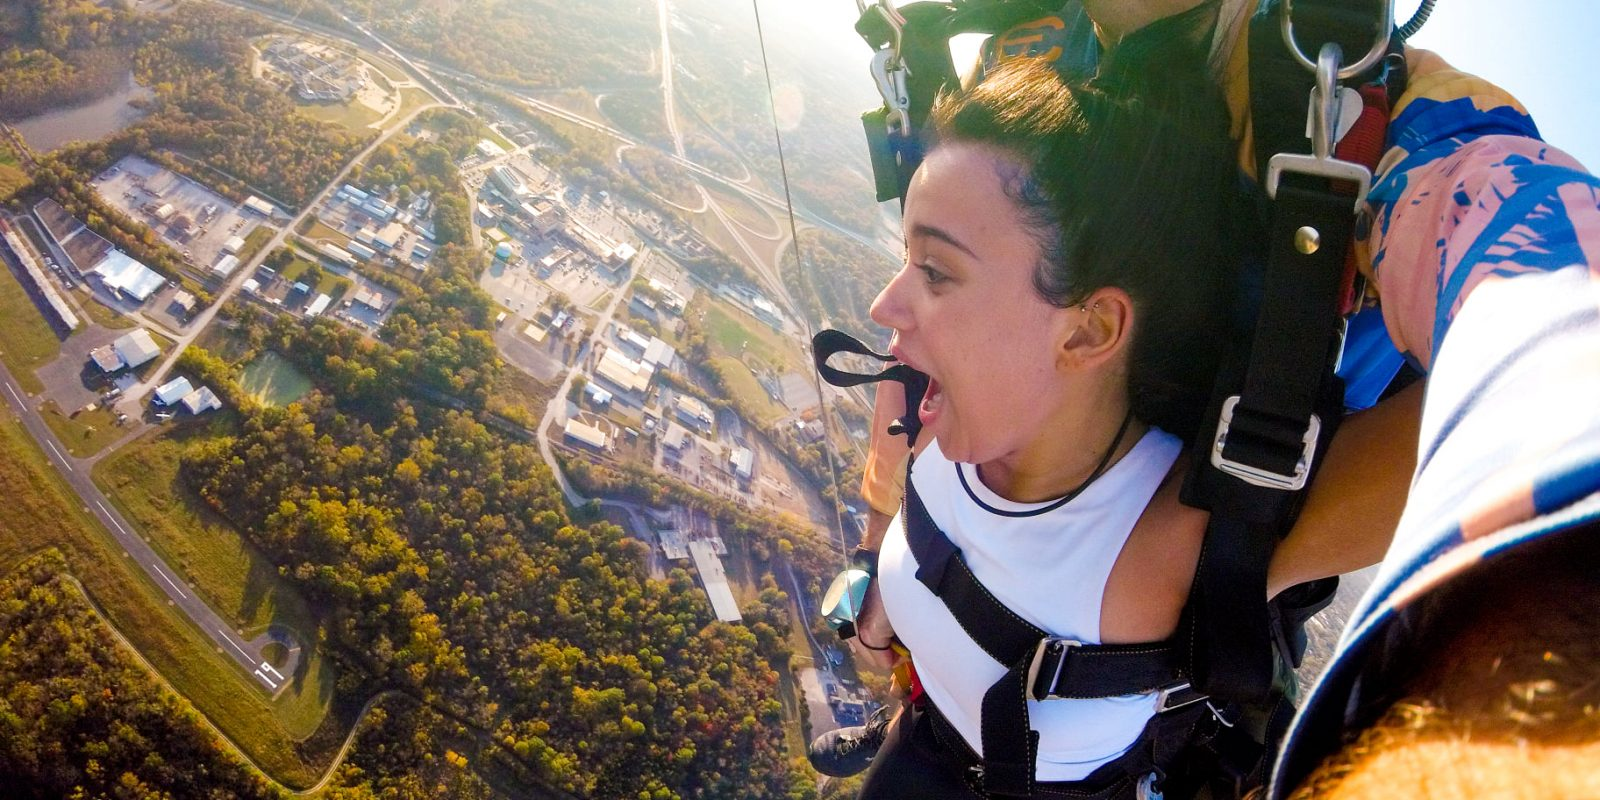 Experience the gateway to the west by skydiving at Skydive St Louis near Chicago